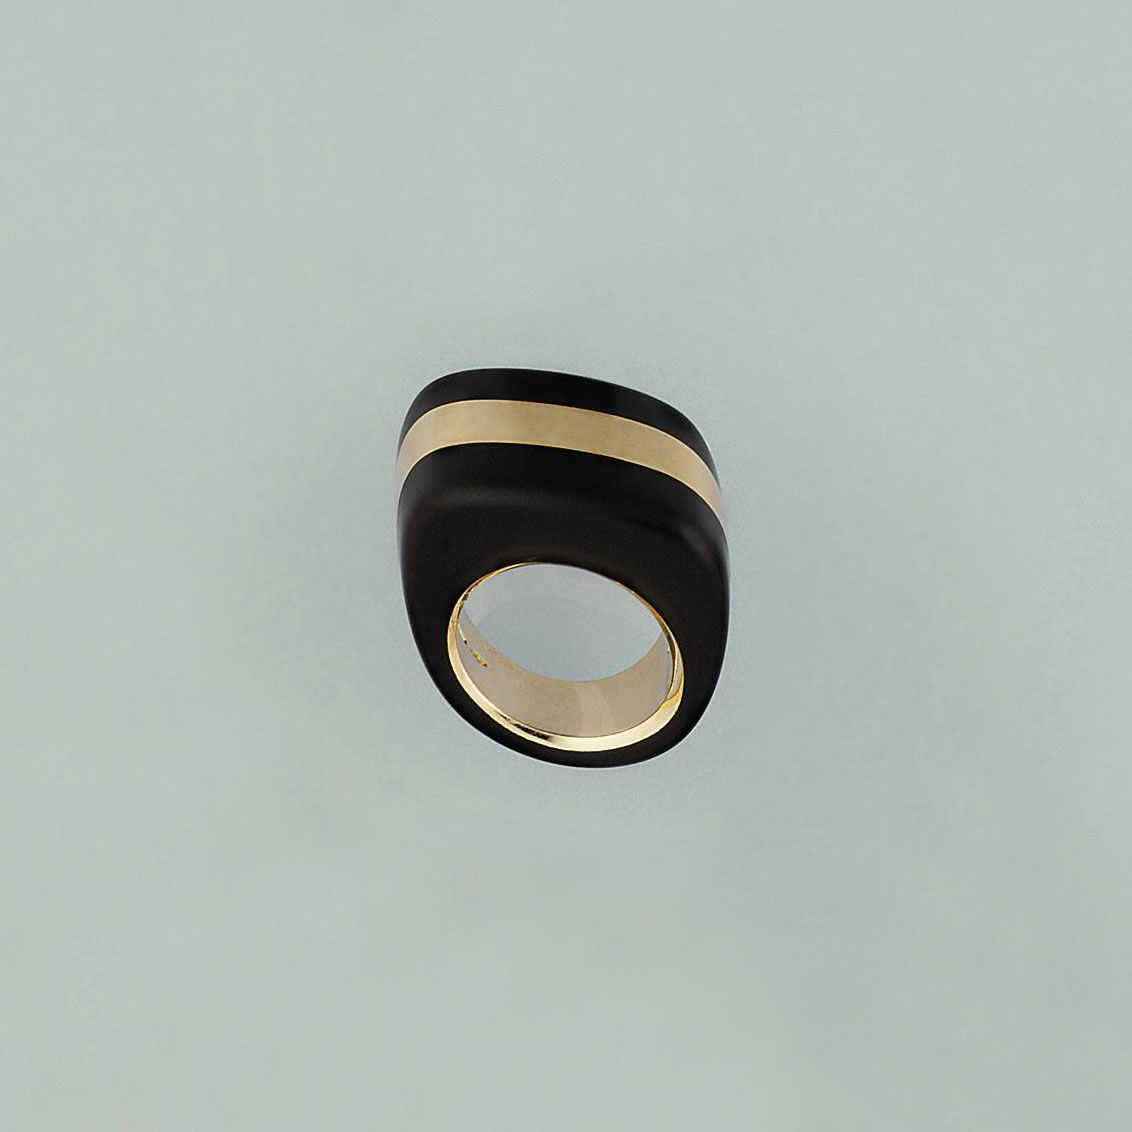 An ebony set ring, by Vhernier